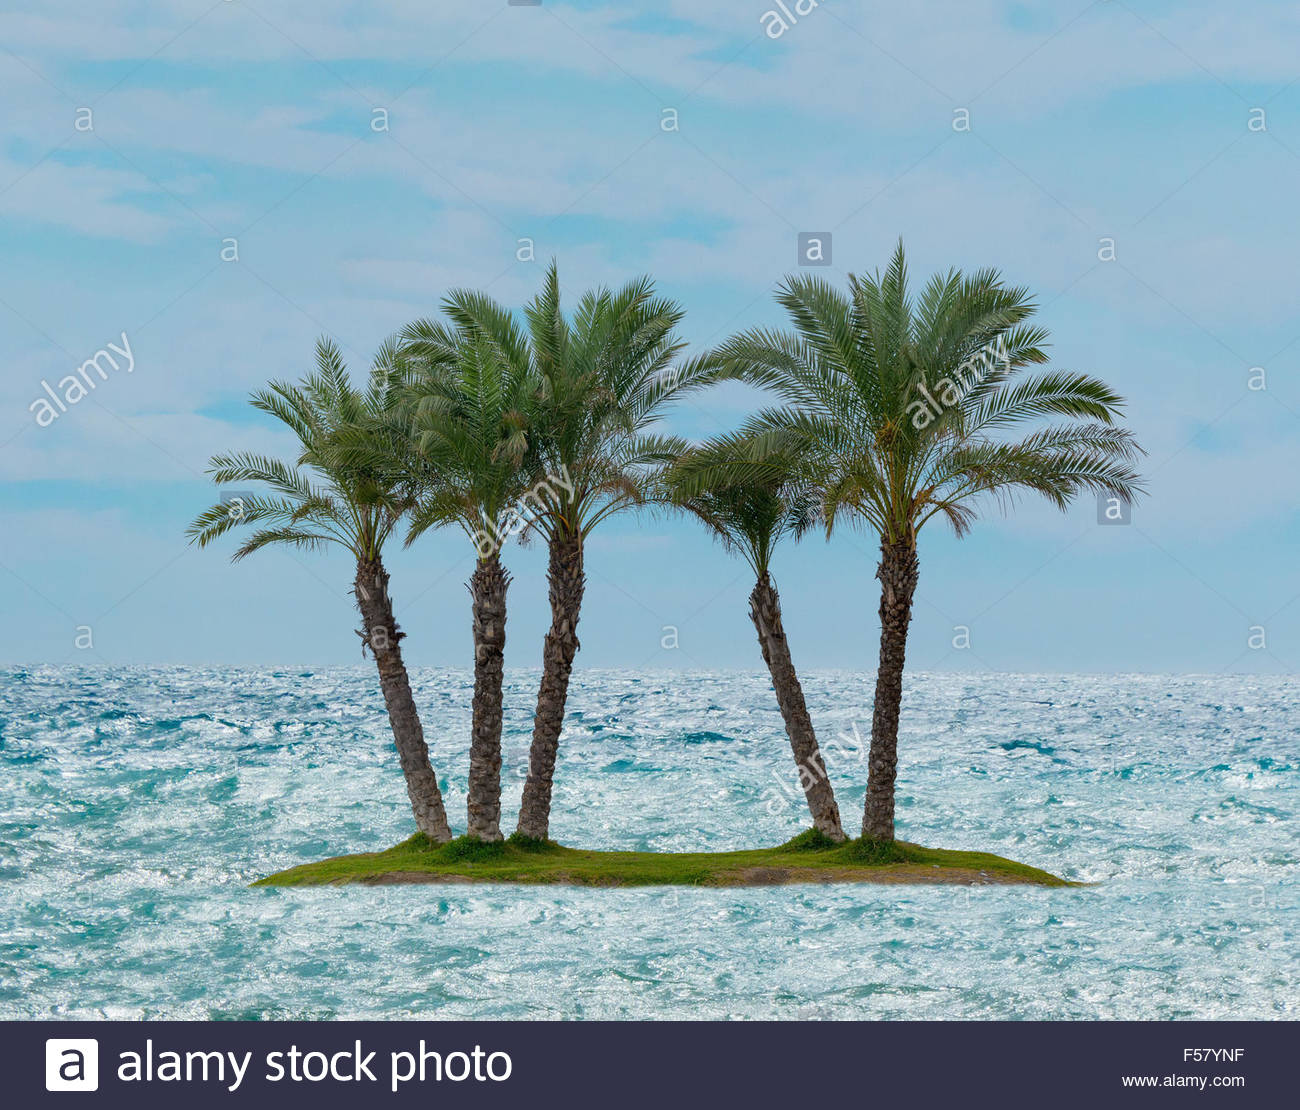 Desert island in the middle of the ocean - Stock Image